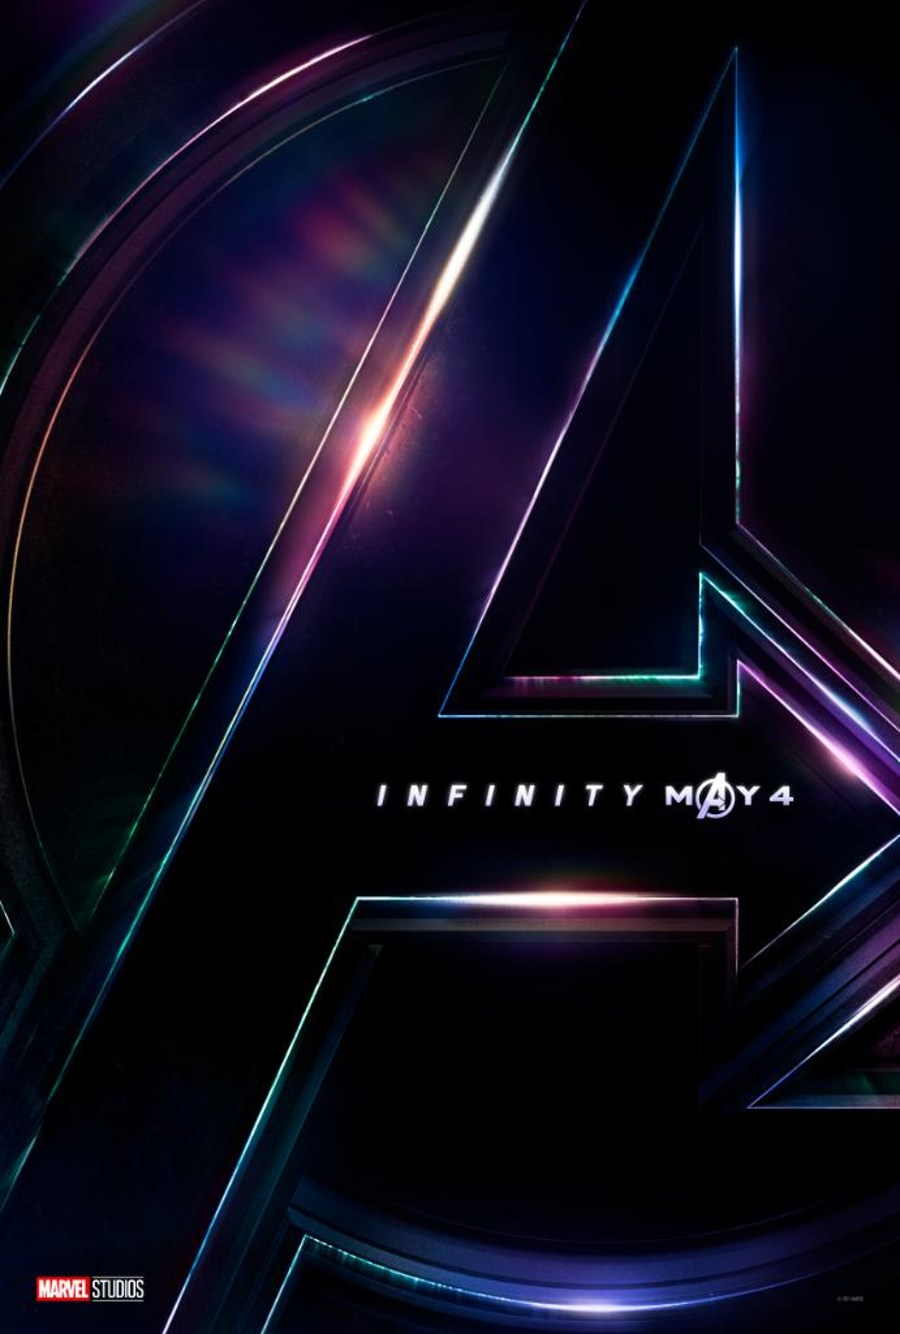 It's finally here, check out the #MarvelStudioss' #Avengers: #InfinityWar Official Trailer, it's awesome, can't wait to see this one an #IMAX screen